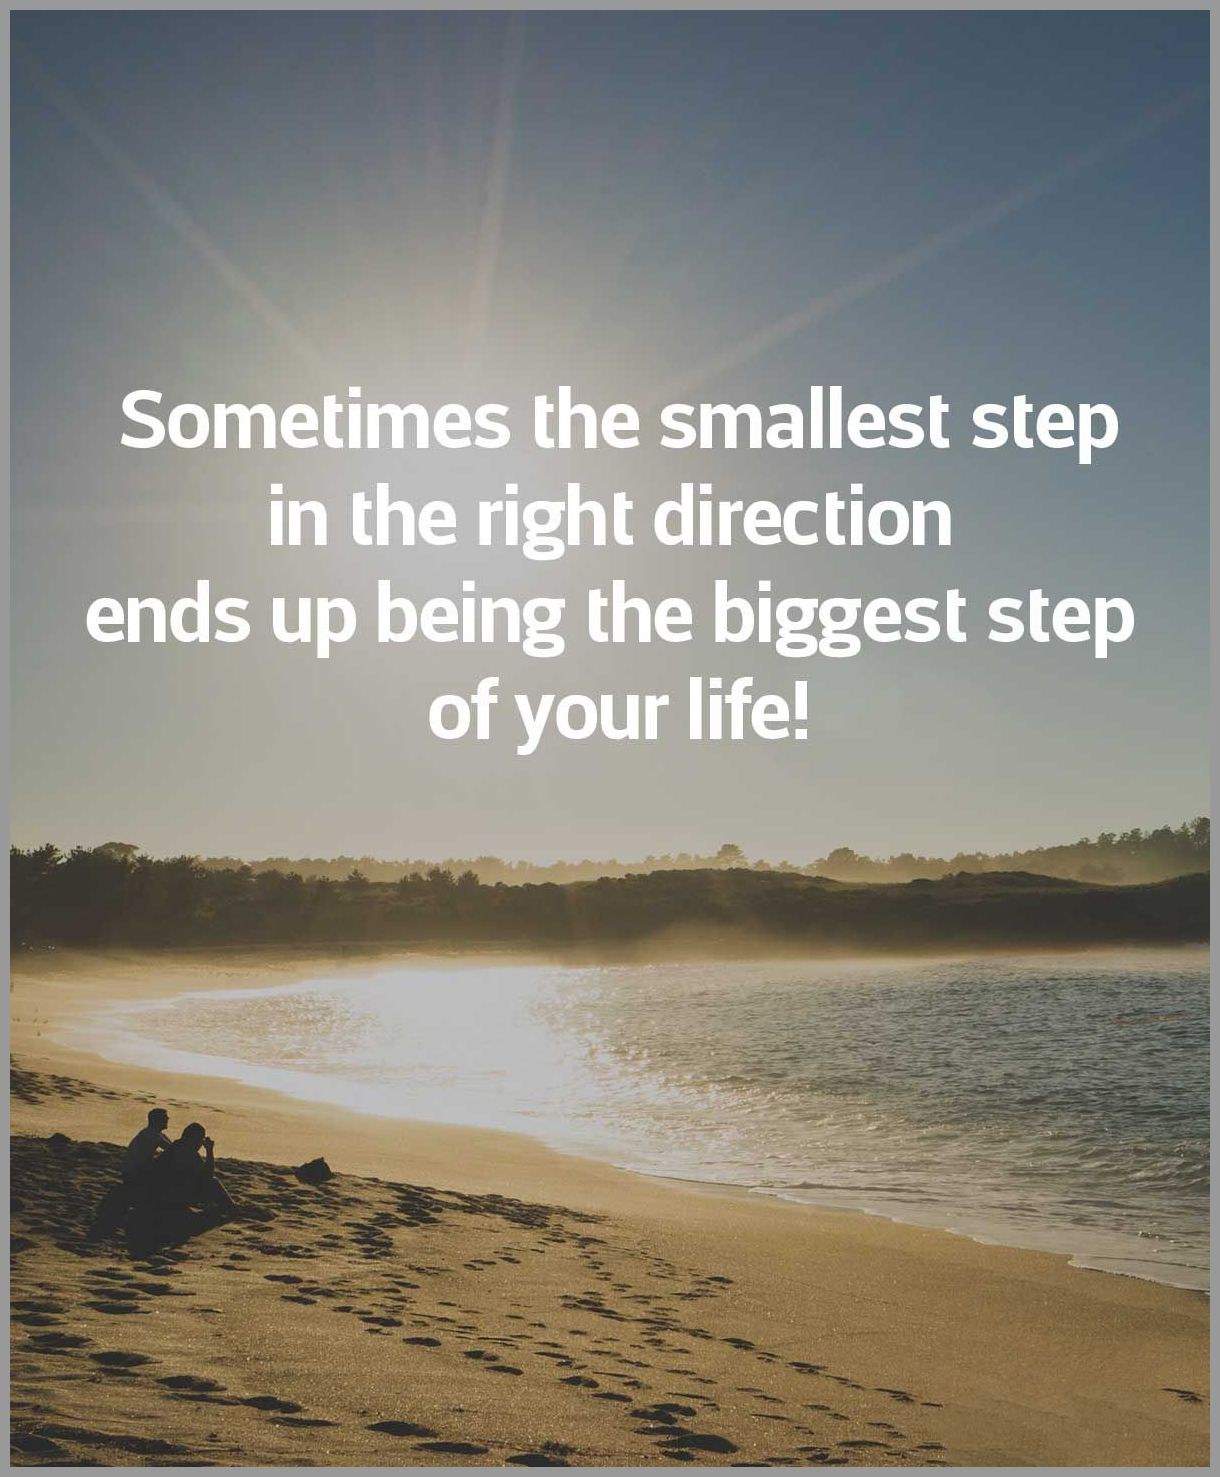 Sometimes the smallest step in the right direction ends up being the biggest step of your life - Sometimes the smallest step in the right direction ends up being the biggest step of your life